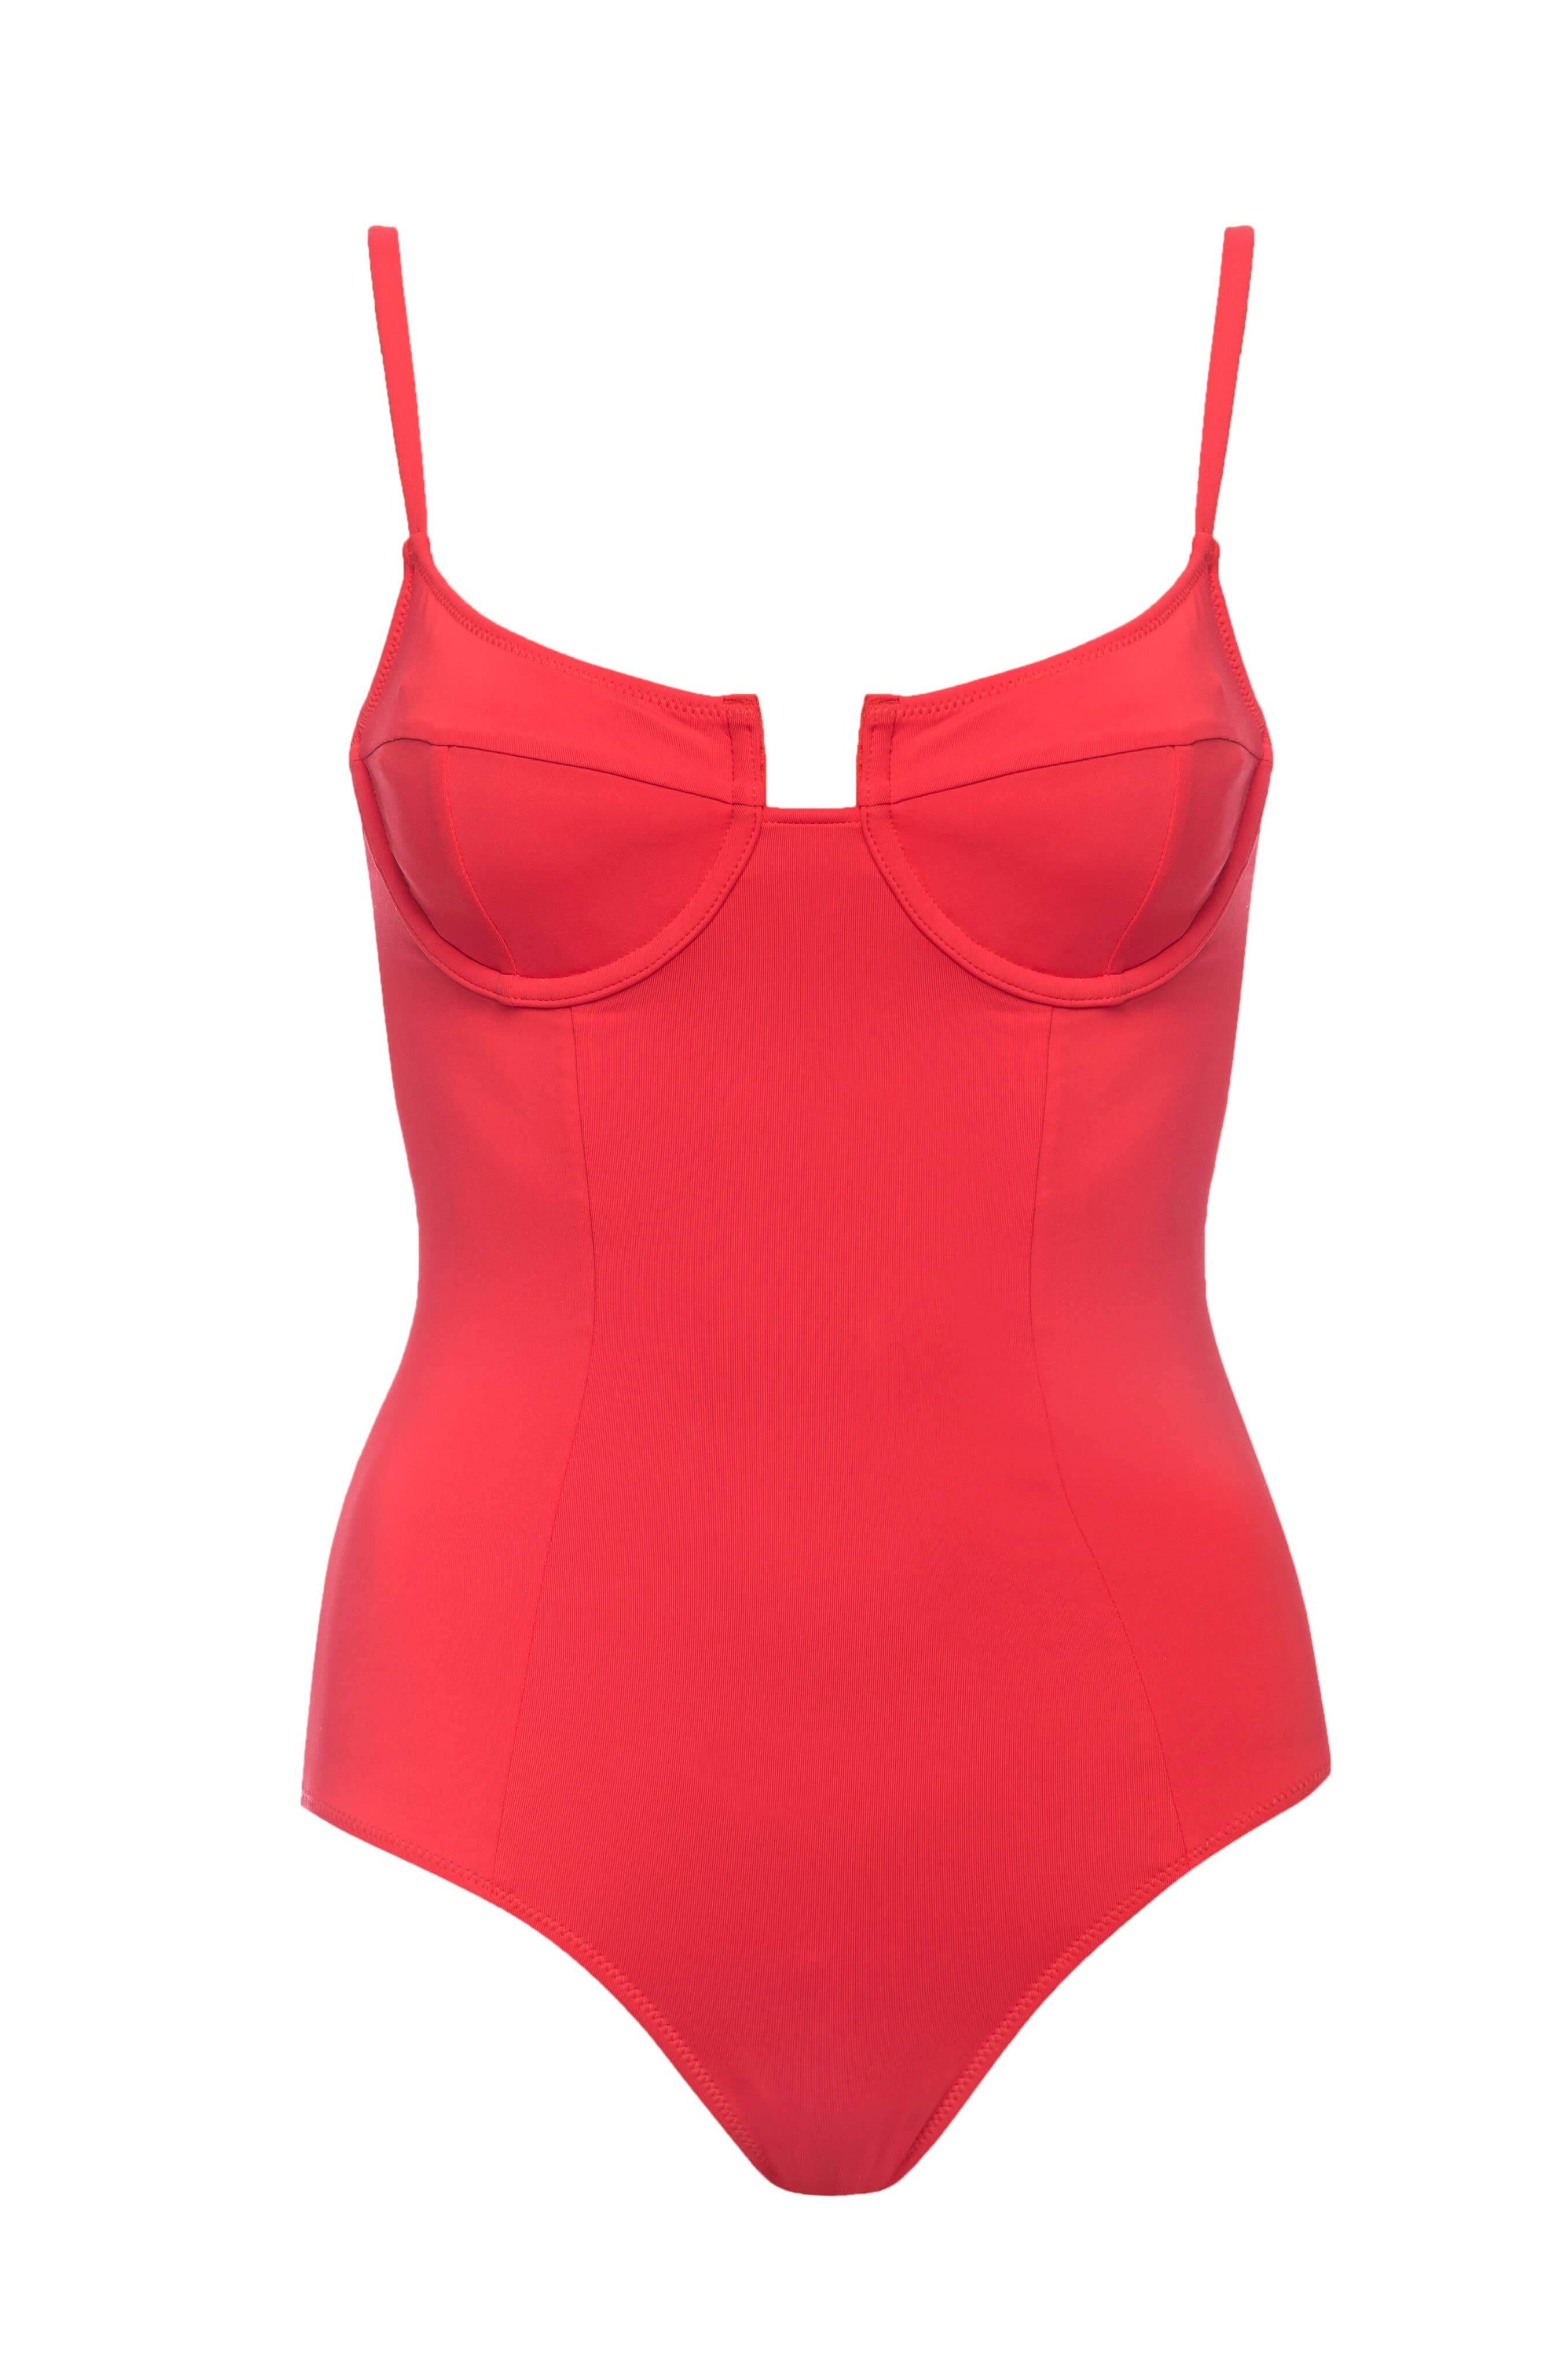 MONTEGO UNDERWIRE RED SWIMSUIT